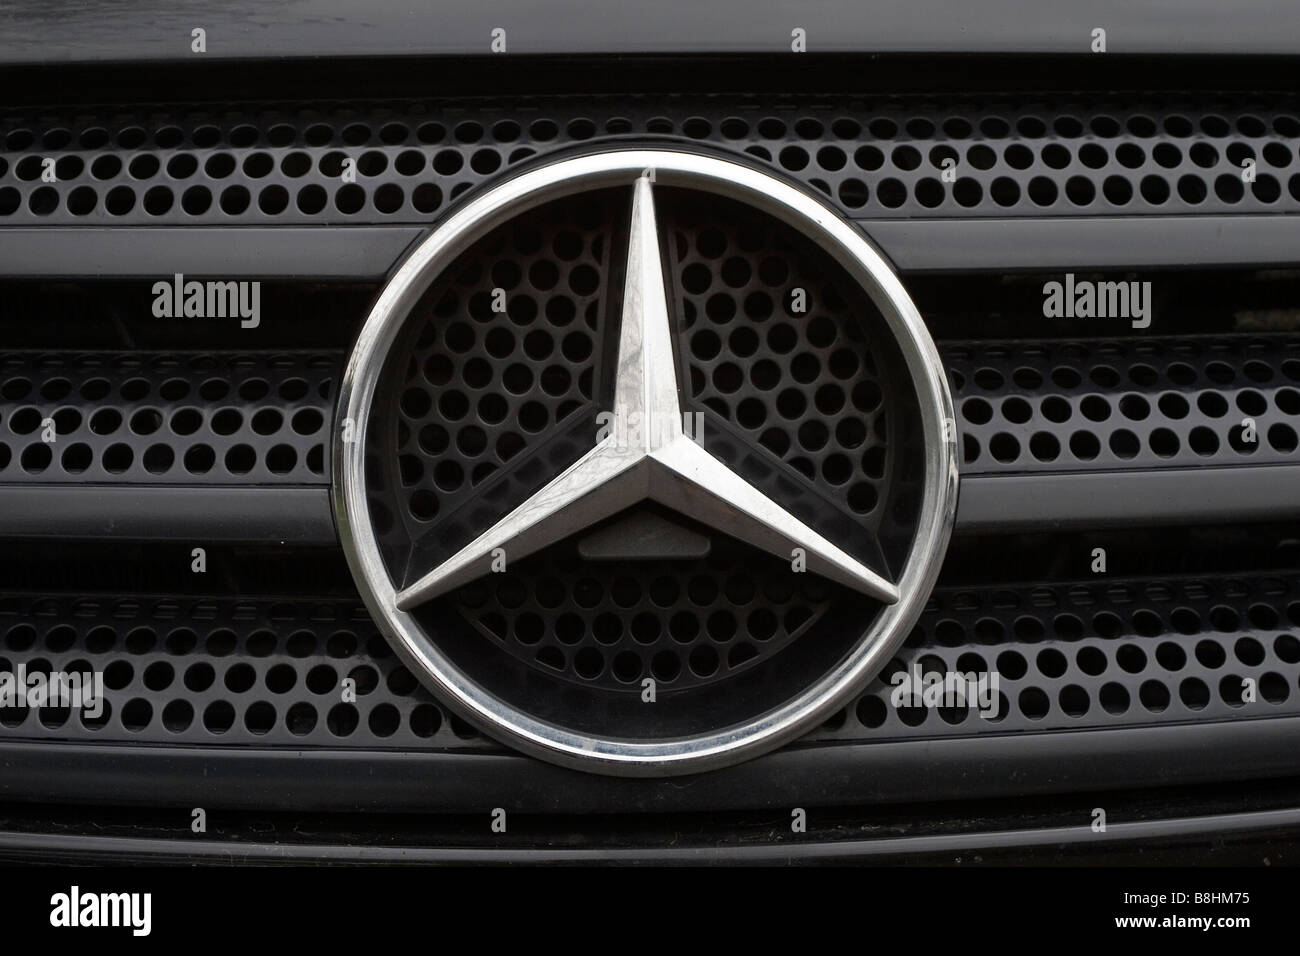 Mercedes Benz Logo Stock Photos & Mercedes Benz Logo Stock